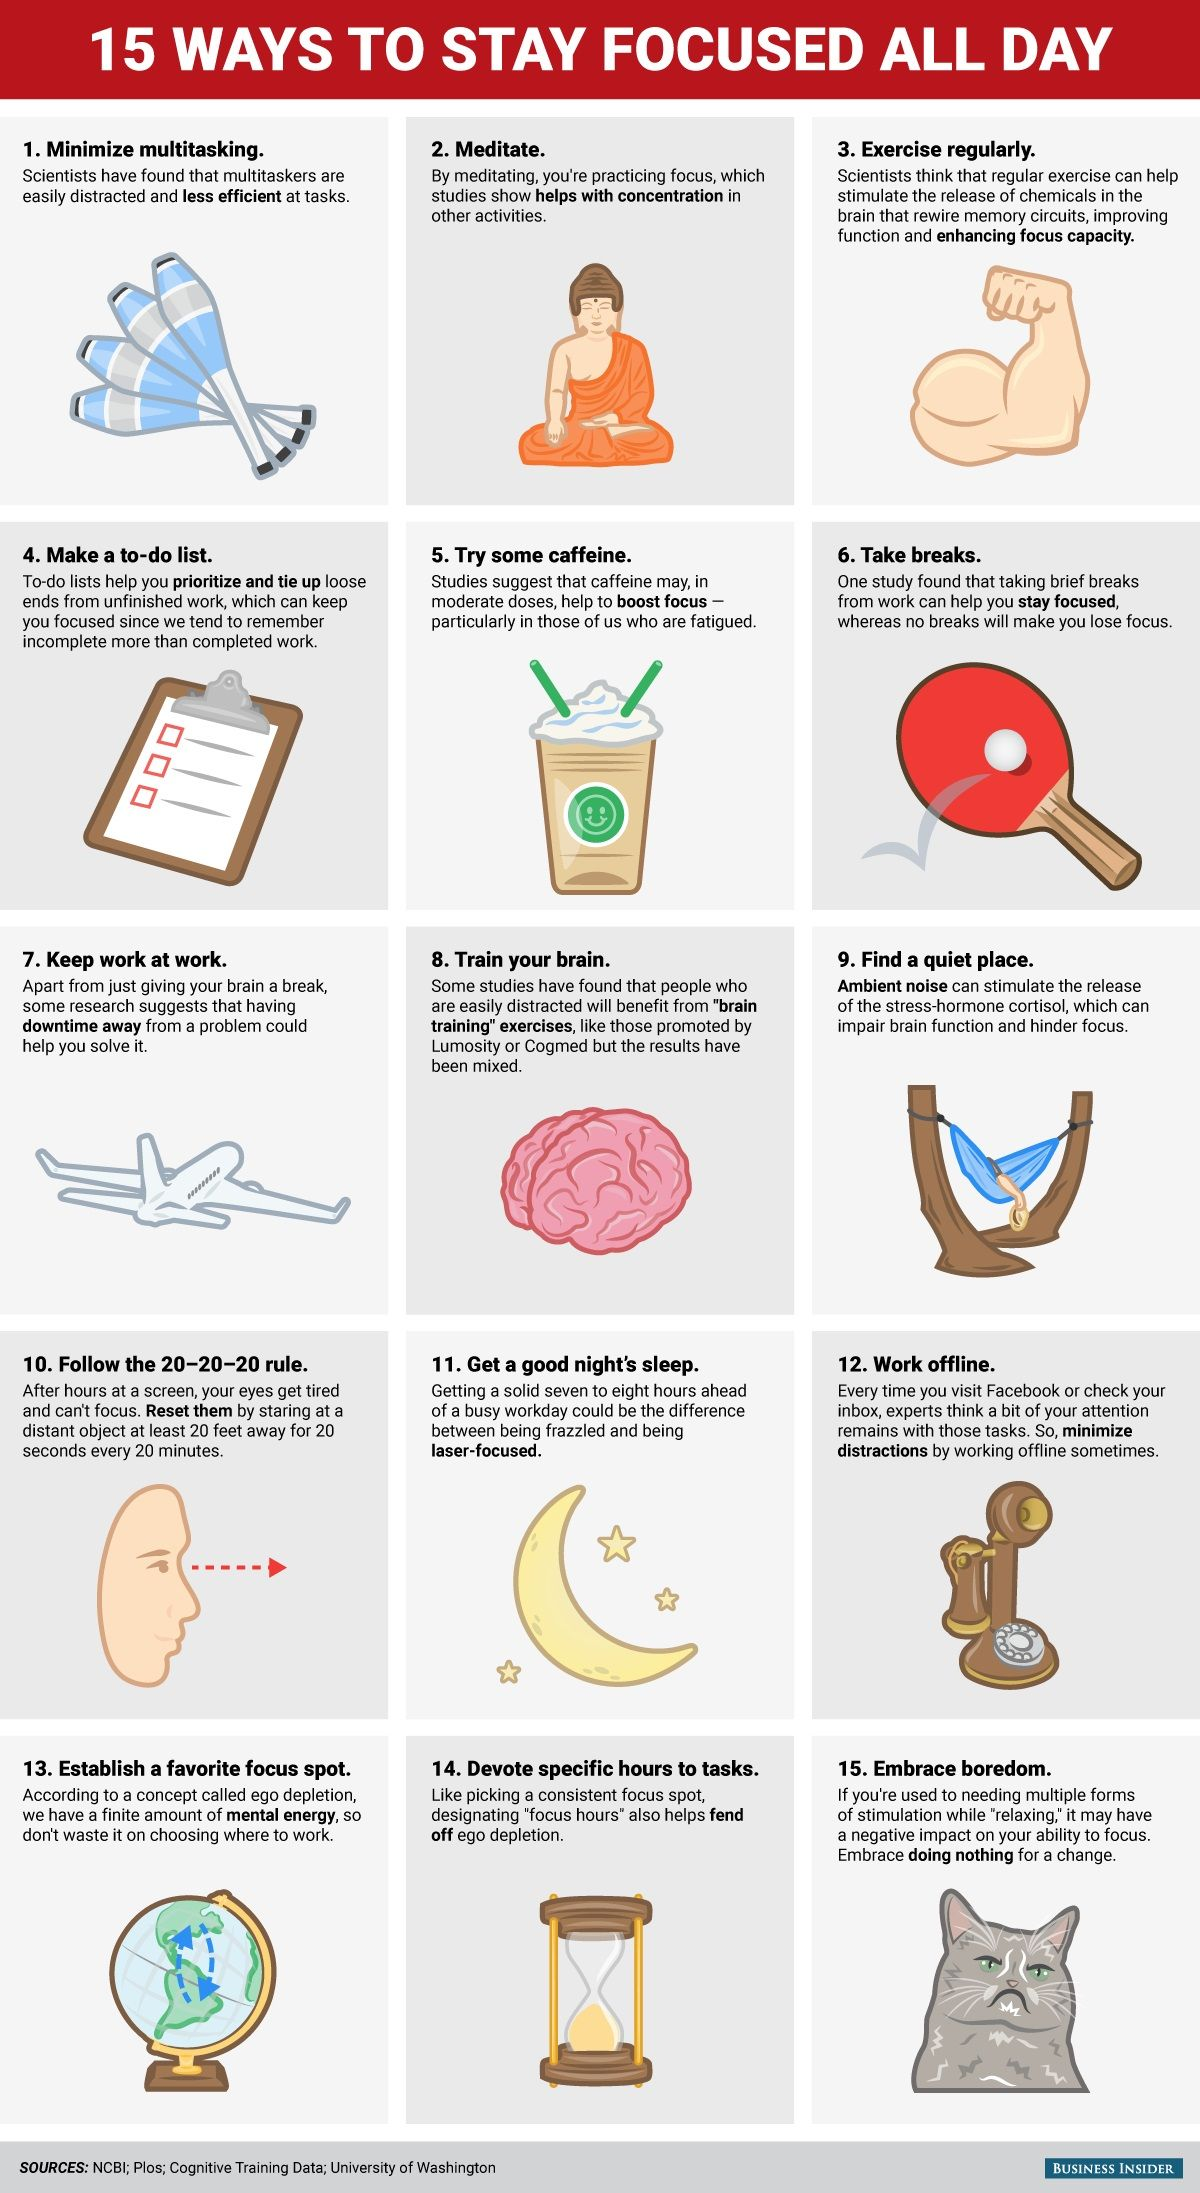 Watch 20 Ways to Reduce Work Stress in 1 Minute or Less video